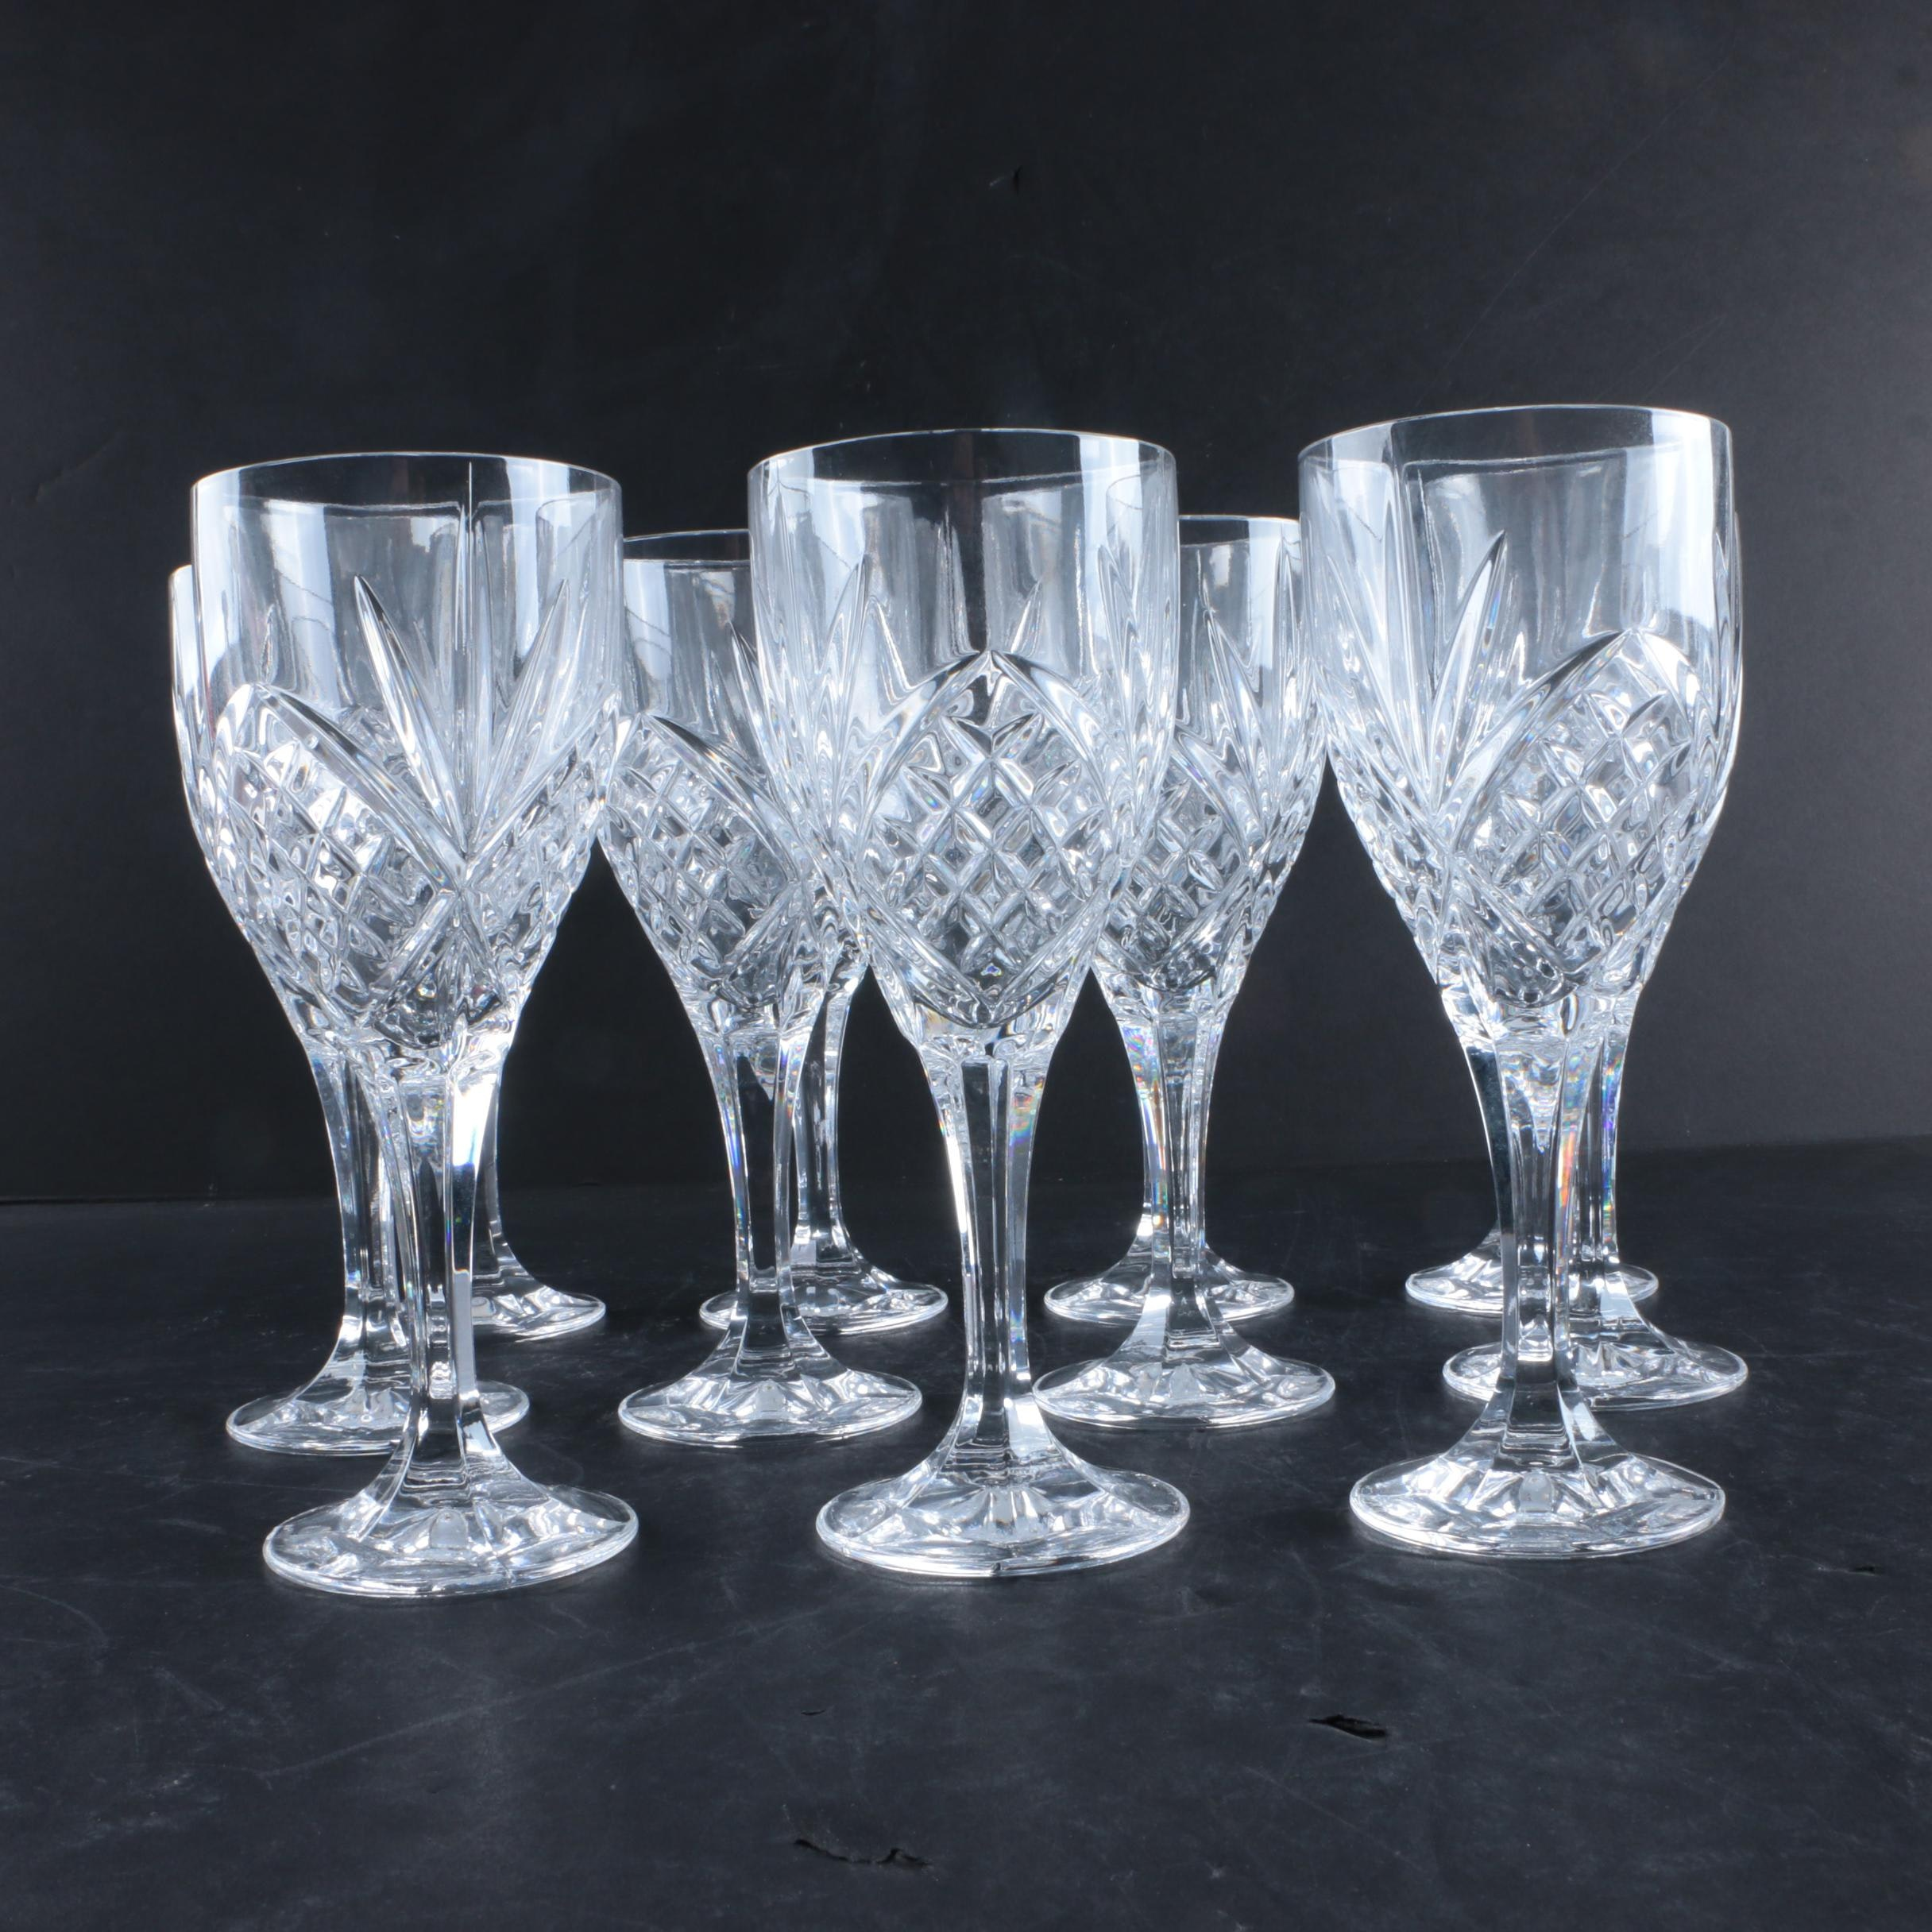 Collection of Pressed Crystal Stemware